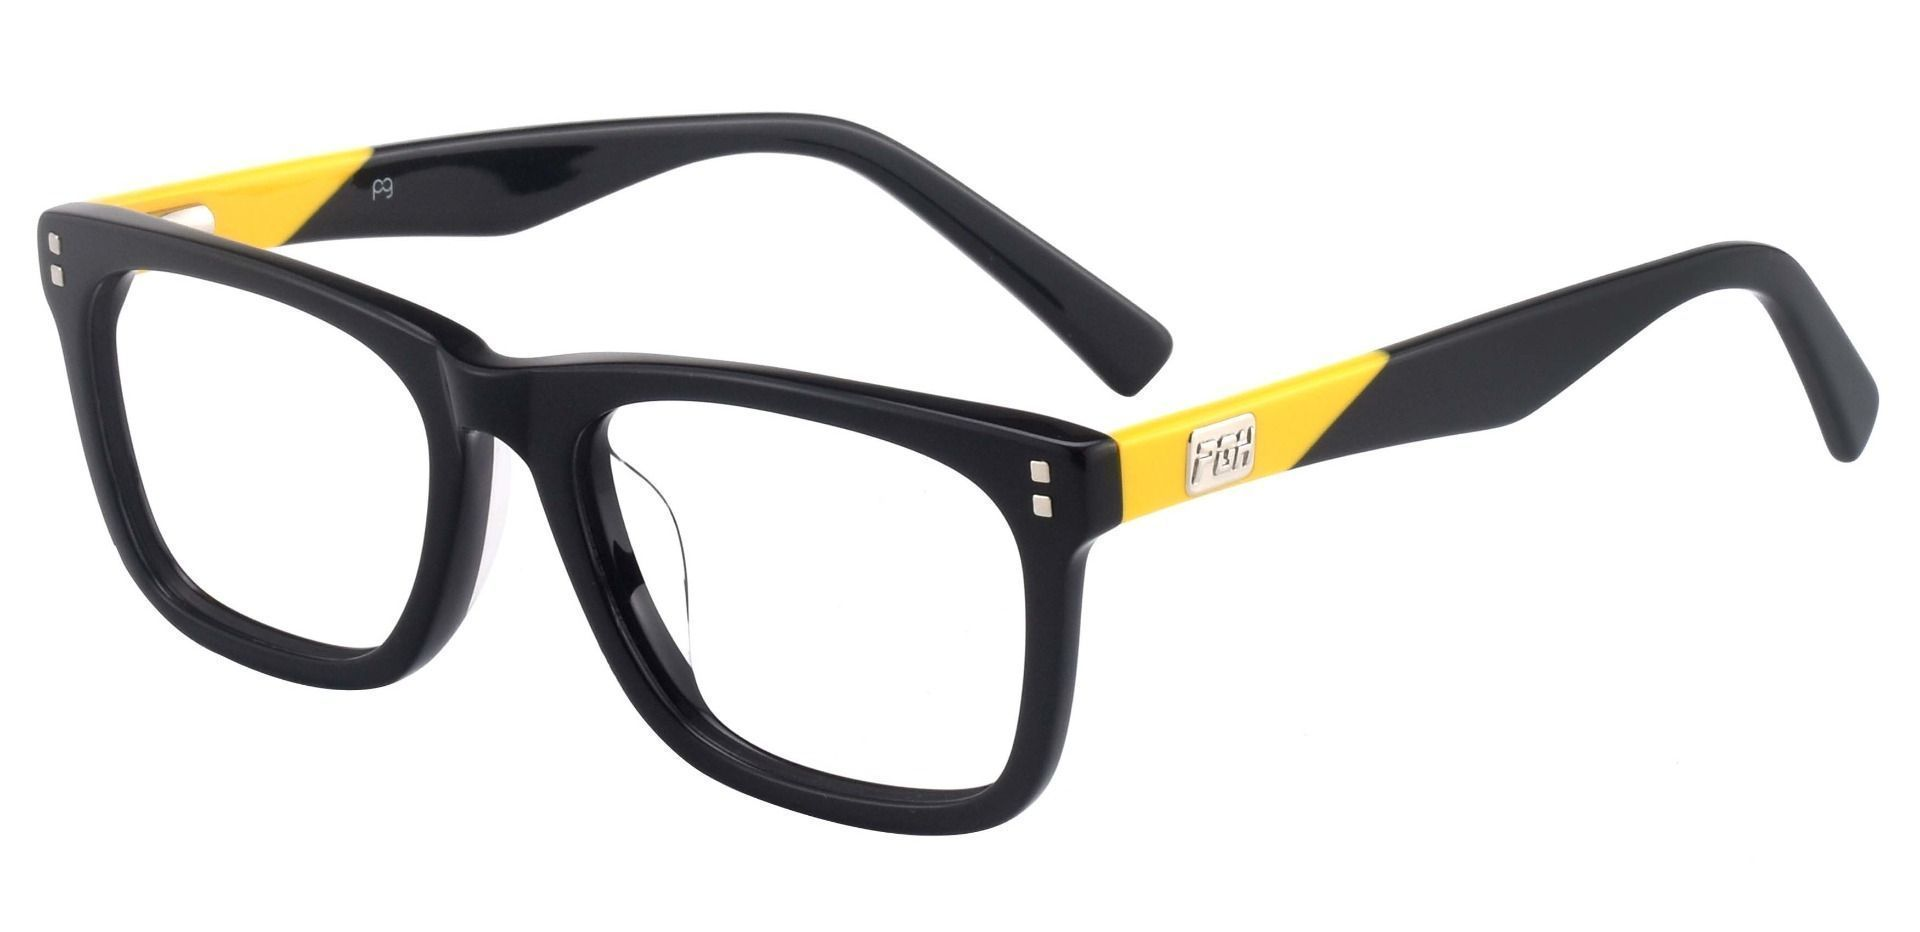 Liberty Rectangle Prescription Glasses - The Frame Is Black And Gold